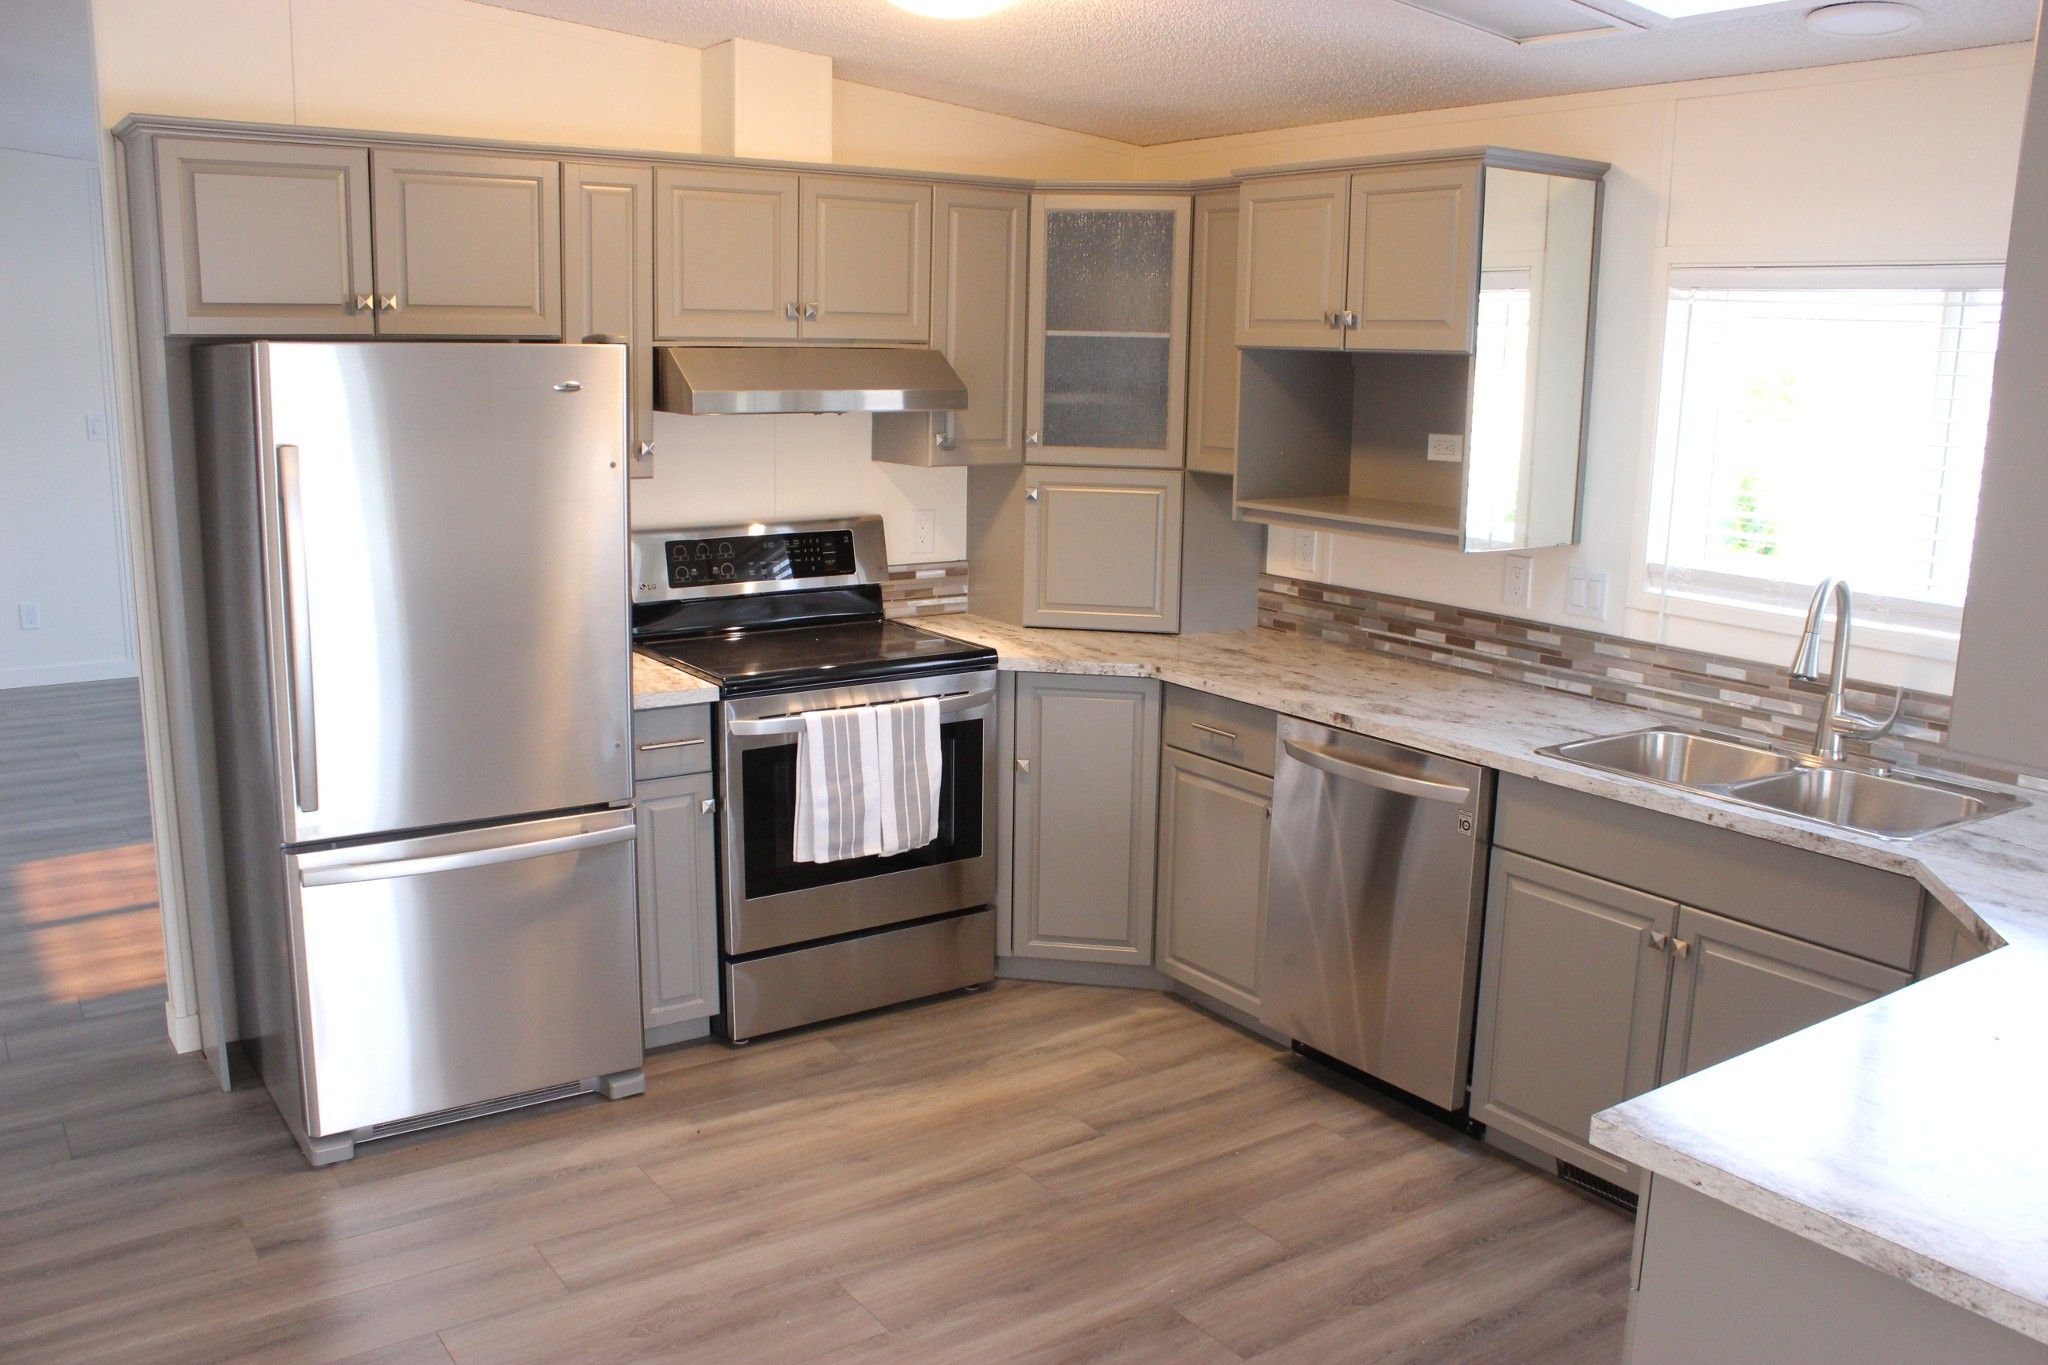 Photo 5: Photos: 22 3099 E Shuswap Road in Kamloops: South Thompson Valley Manufactured Home for sale : MLS®# 147827